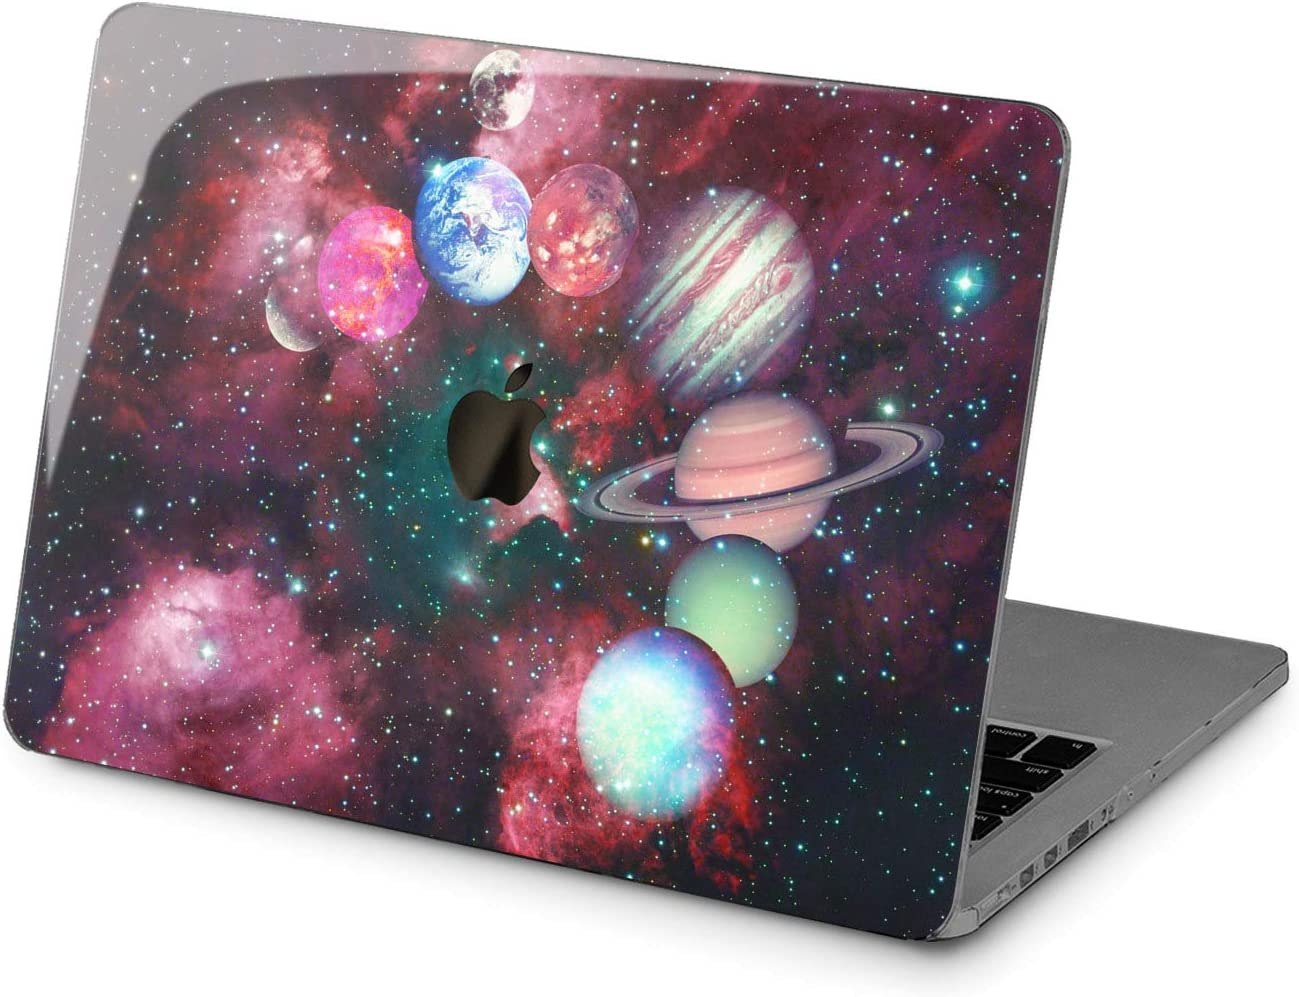 Cavka Hard Shell Case for Apple MacBook Pro 13 2019 15 2018 Air 13 2020 Retina 2015 Mac 11 Mac 12 Cute Yellow Star Protective Plastic Design Watercolor Planet Print Celestial Cover Space Laptop